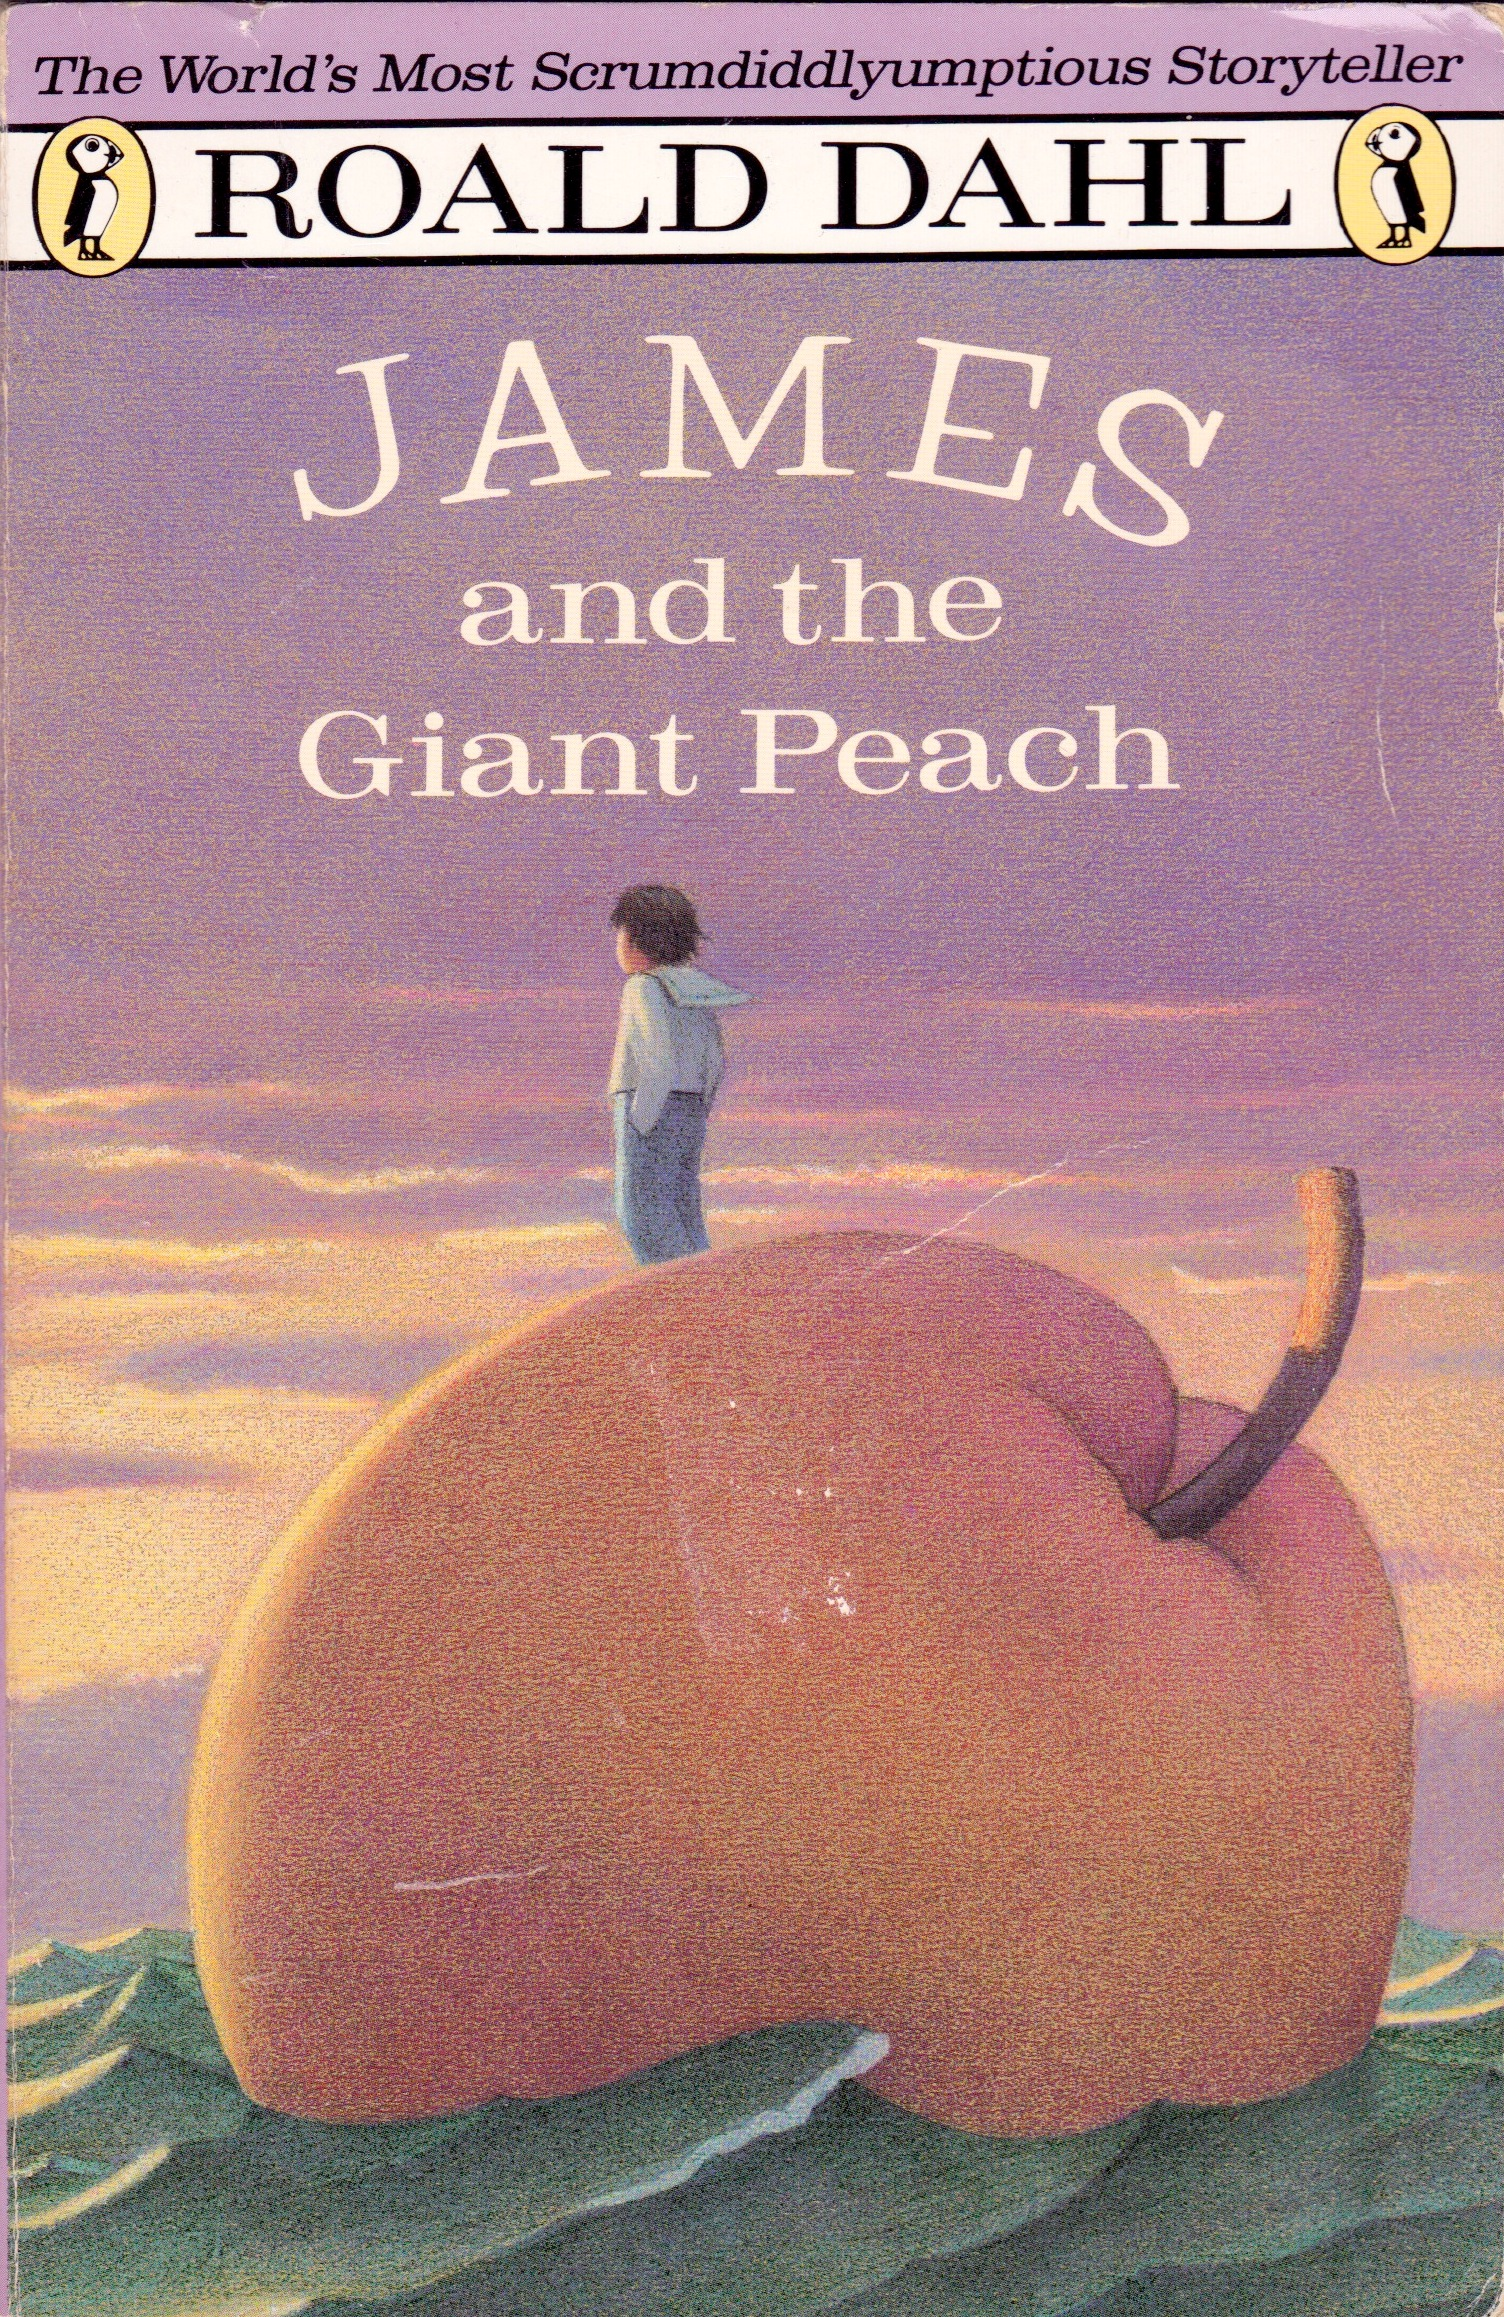 james-and-the-giant-peach1.jpeg